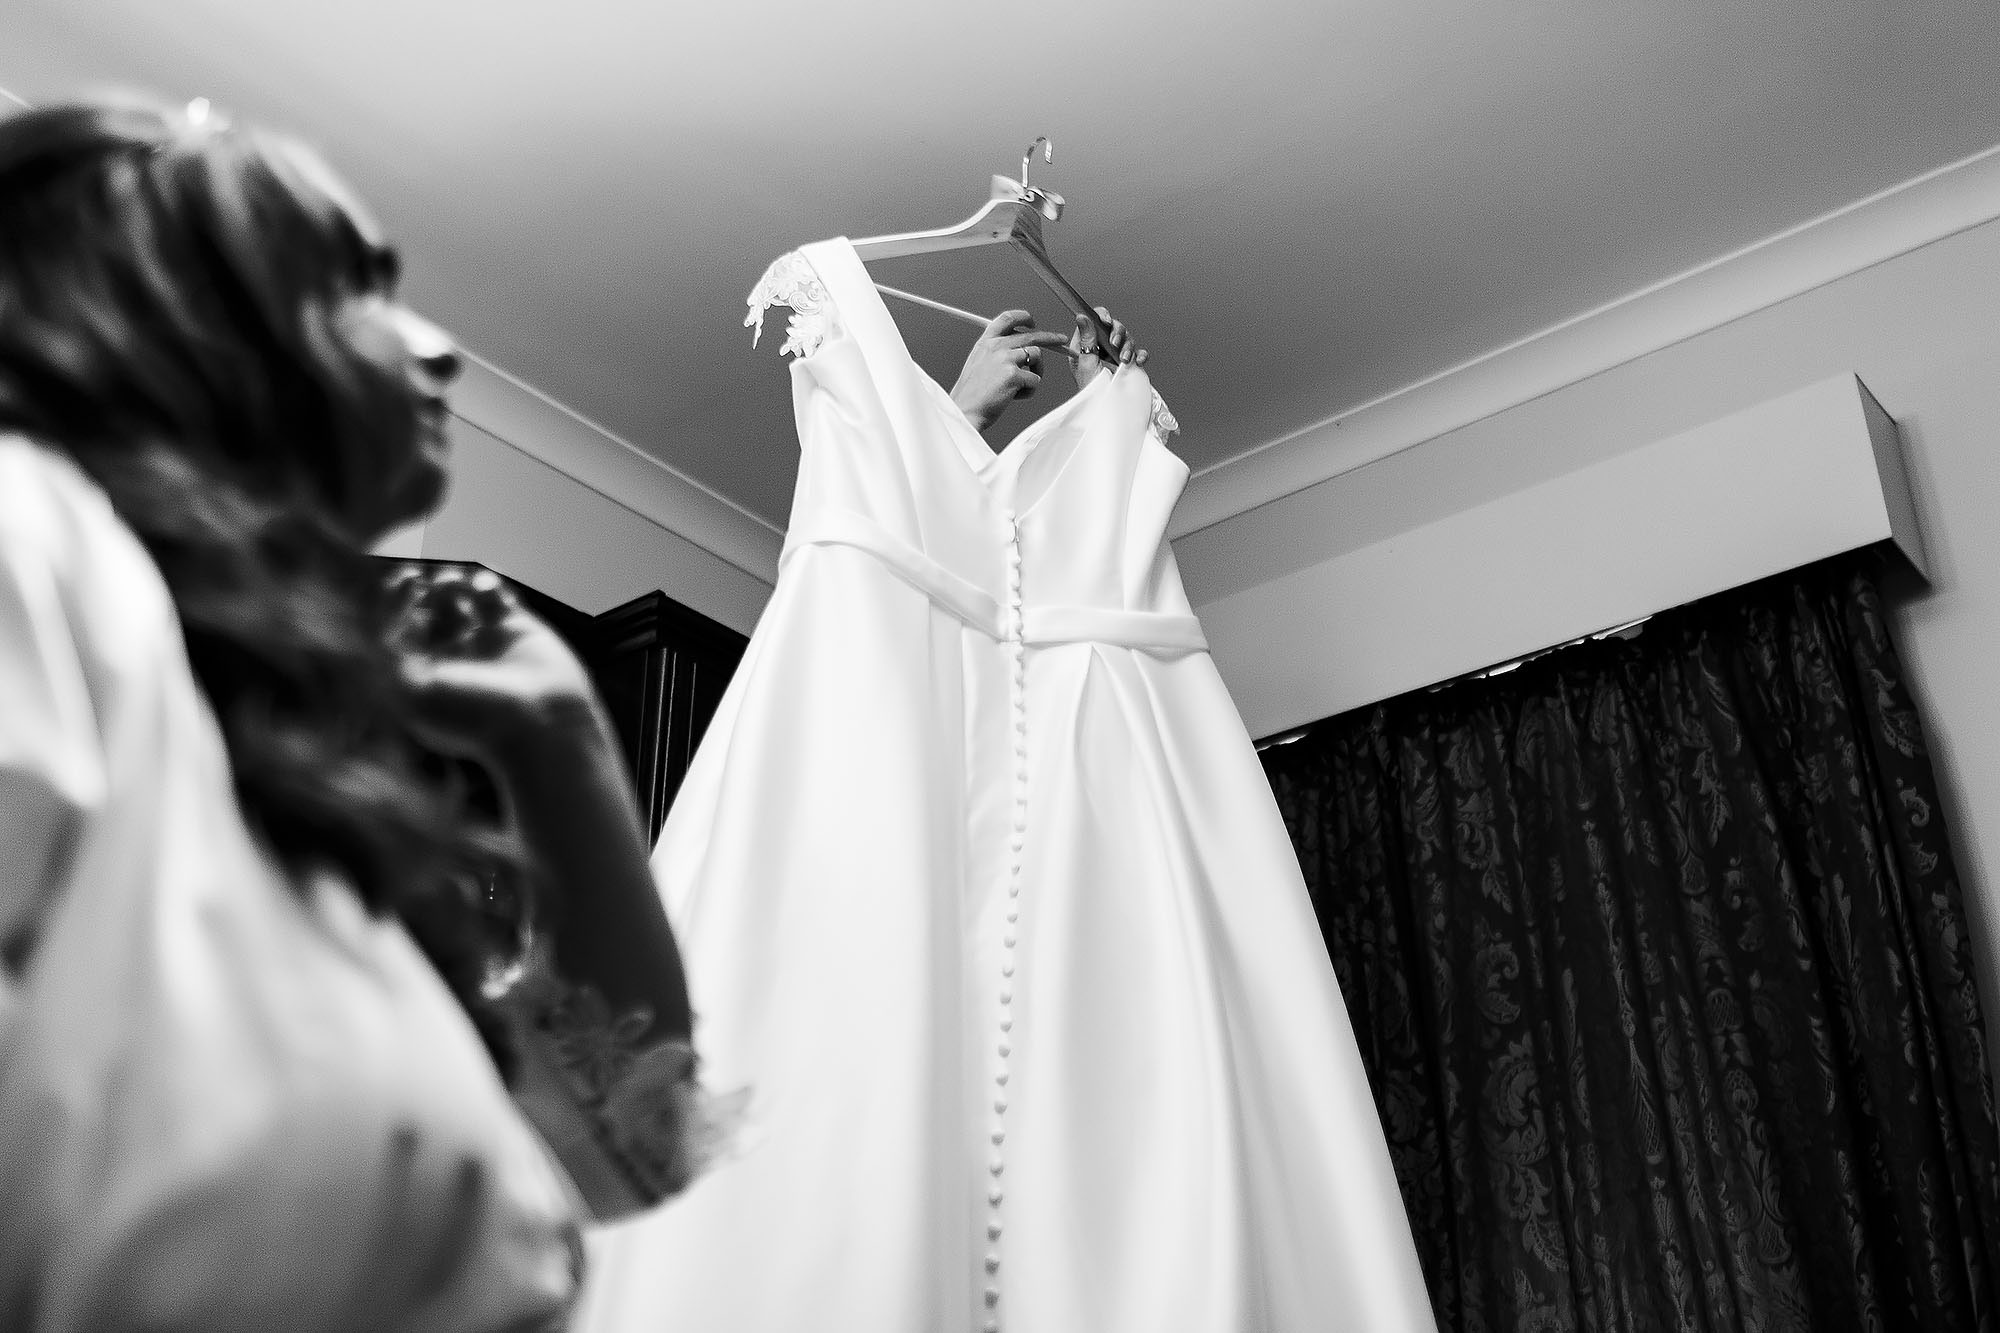 Bride looking up as bridesmaid reaches to the top of the wardrobe to lift down wedding dress | Wellbeing Farm wedding photographs by Toni Darcy Photography